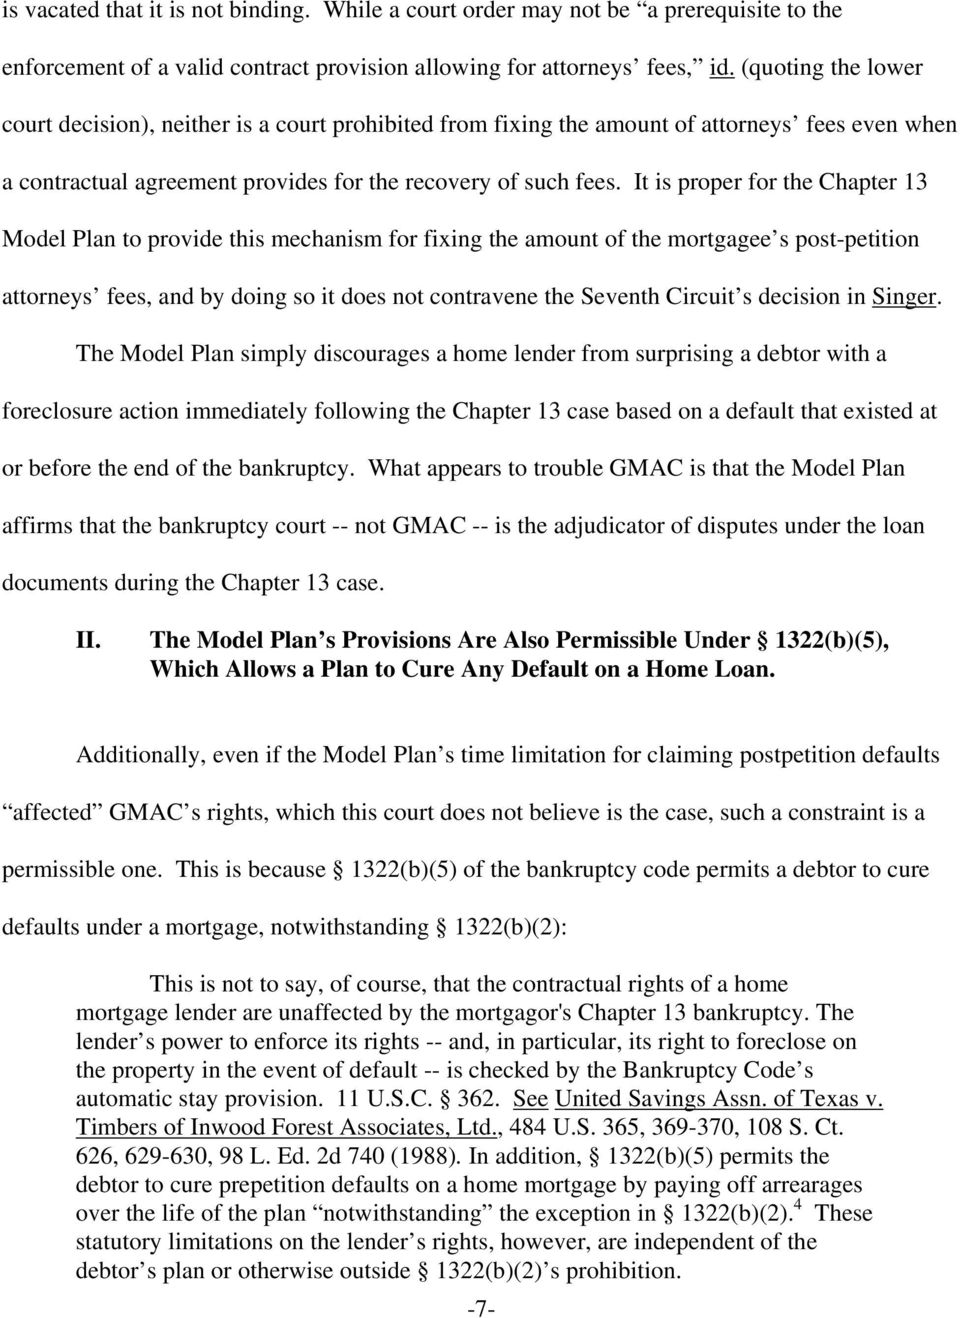 It is proper for the Chapter 13 Model Plan to provide this mechanism for fixing the amount of the mortgagee s post-petition attorneys fees, and by doing so it does not contravene the Seventh Circuit